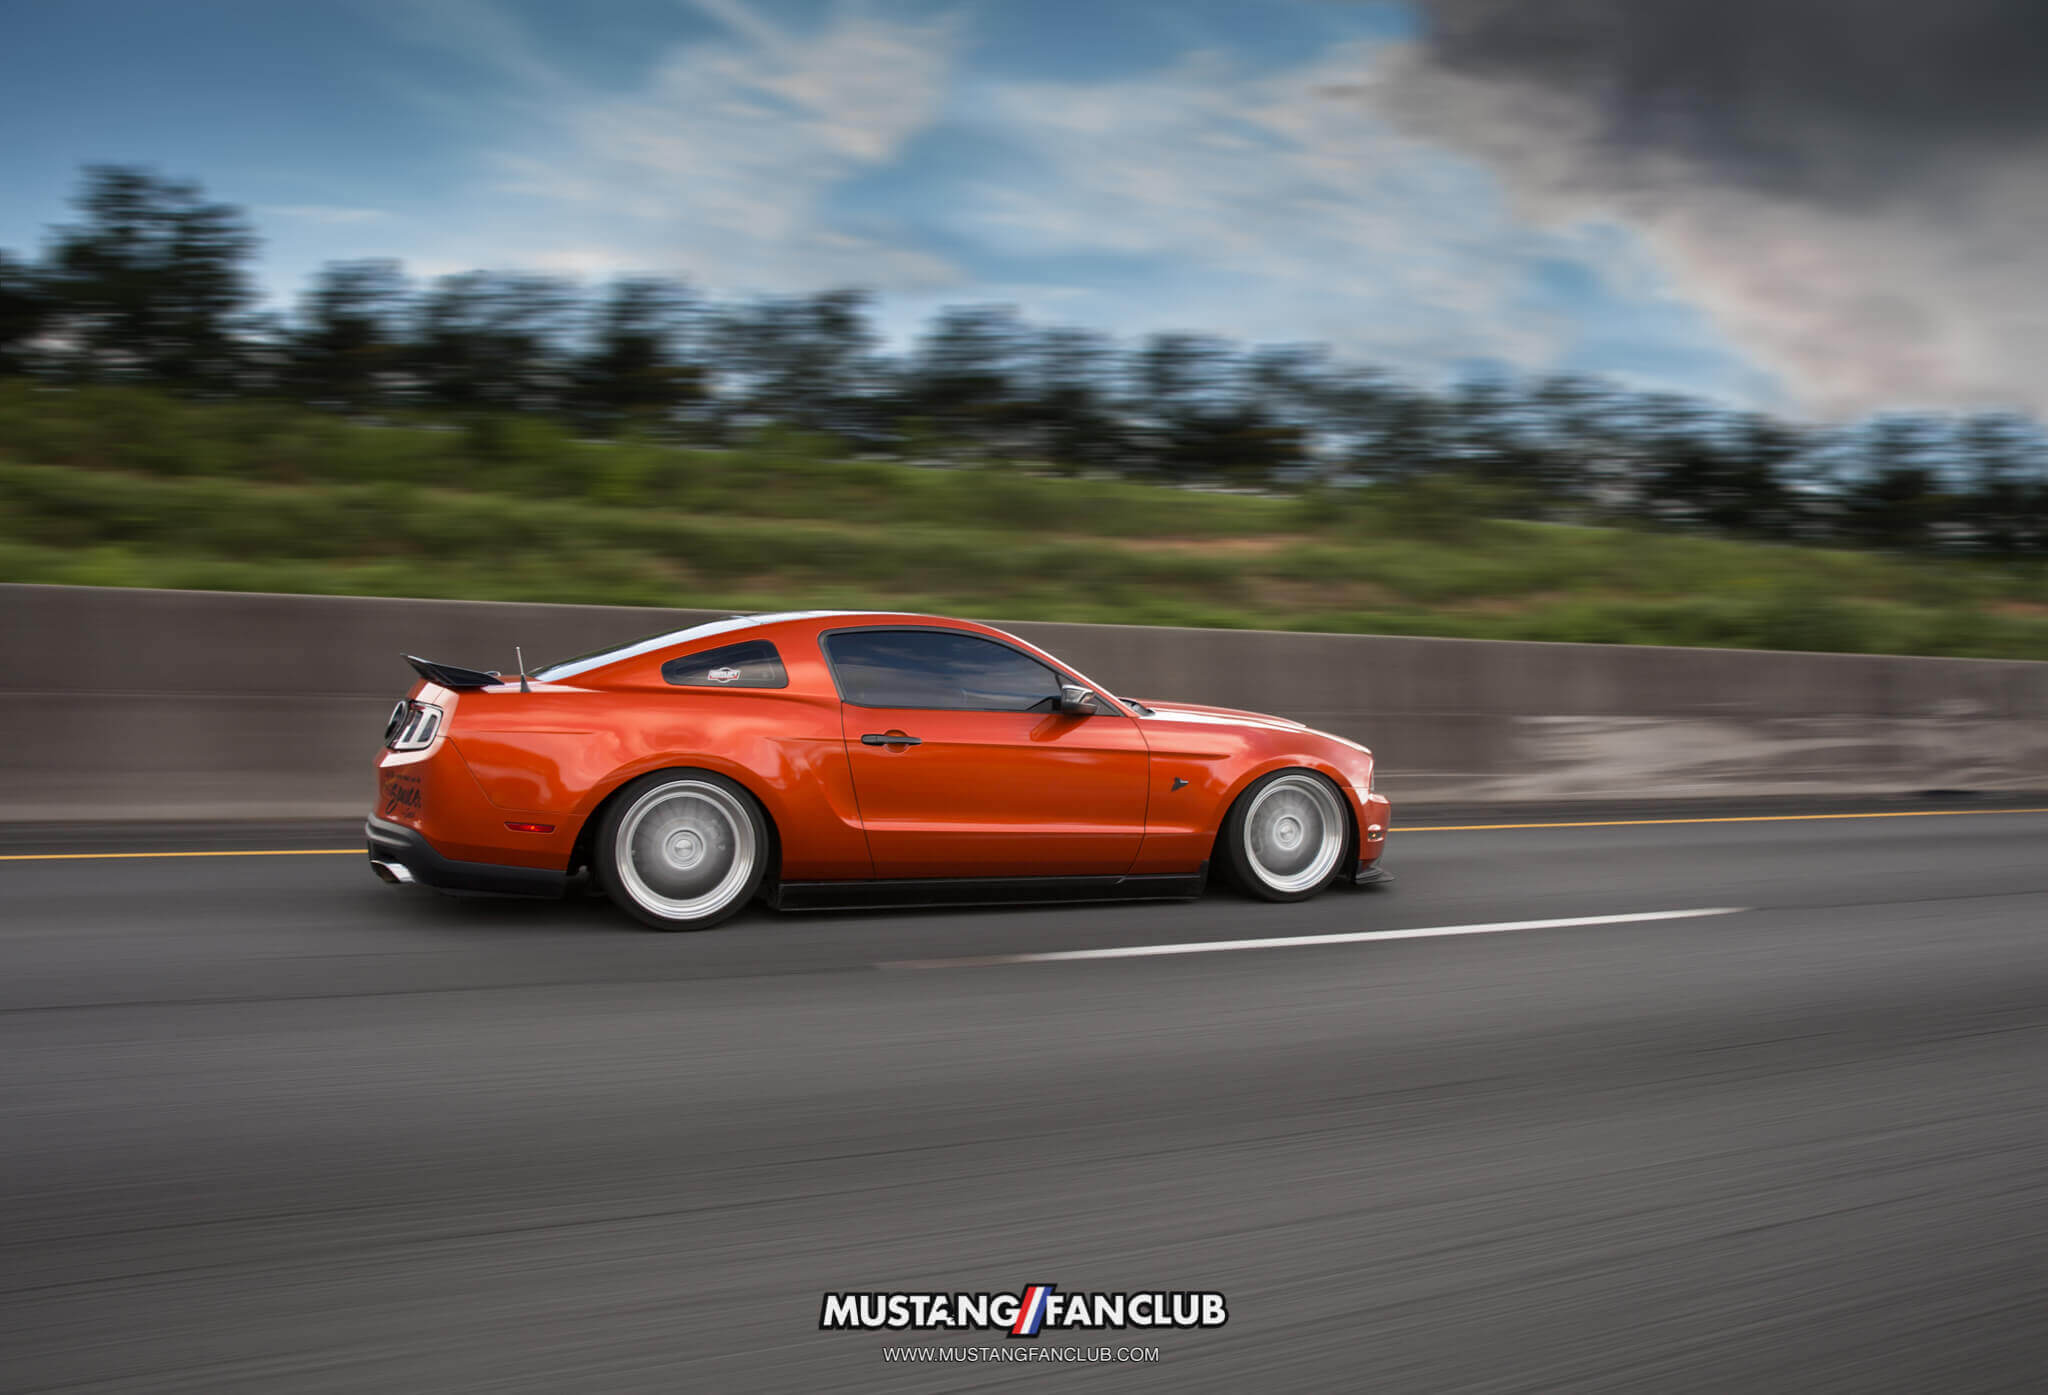 mustang fan club mustangfanclub @mustangfanclub 2011 11 mustang coyote 5.0L 5.0 wrapped bagged air suspension air lift performance rotiform wheels dillon shand rolling shot S197 3m 1080 fiery orange